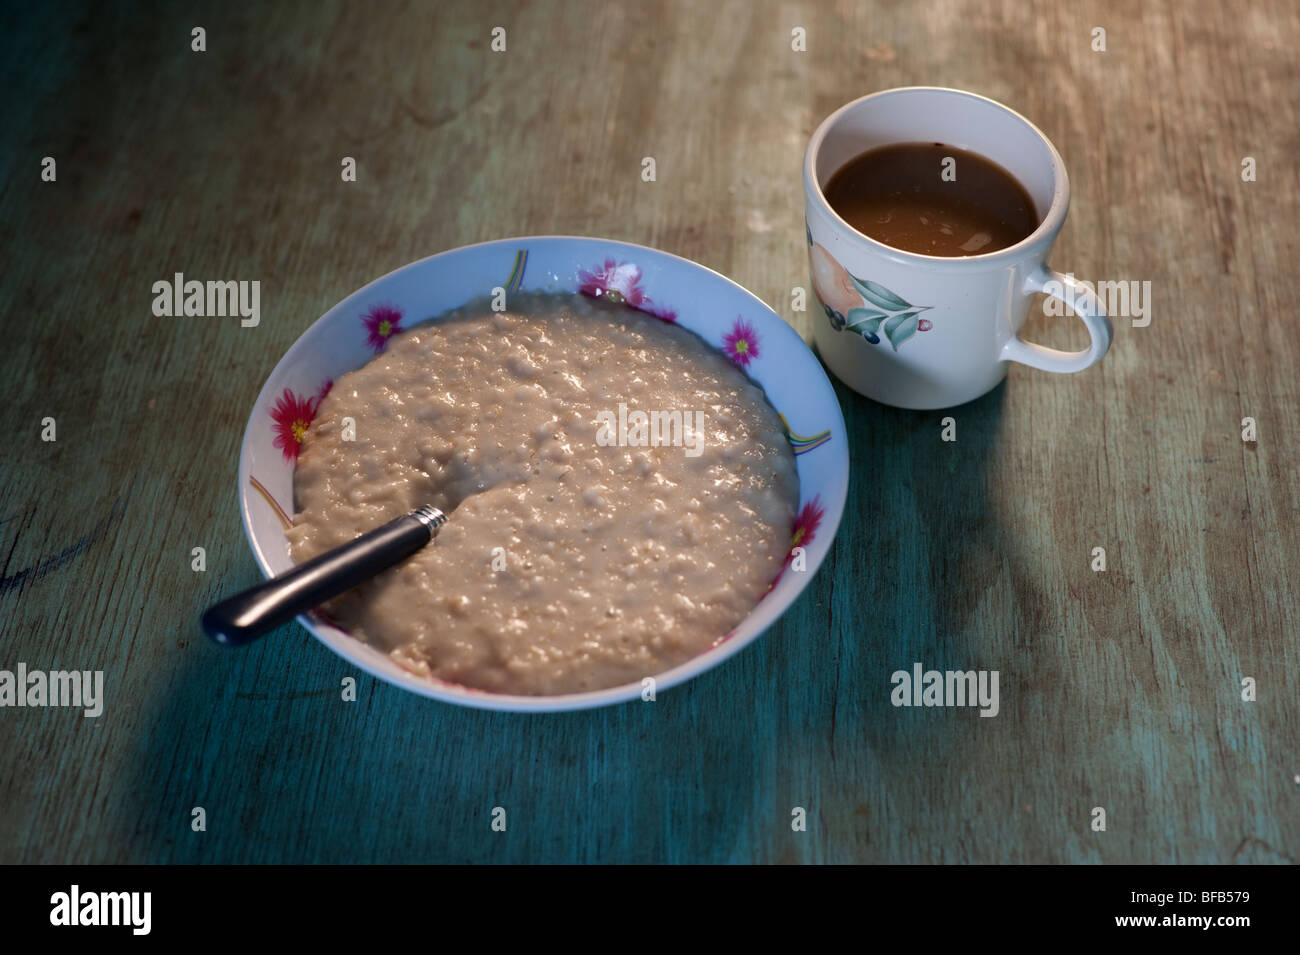 Image result for royalty free images instant oatmeal